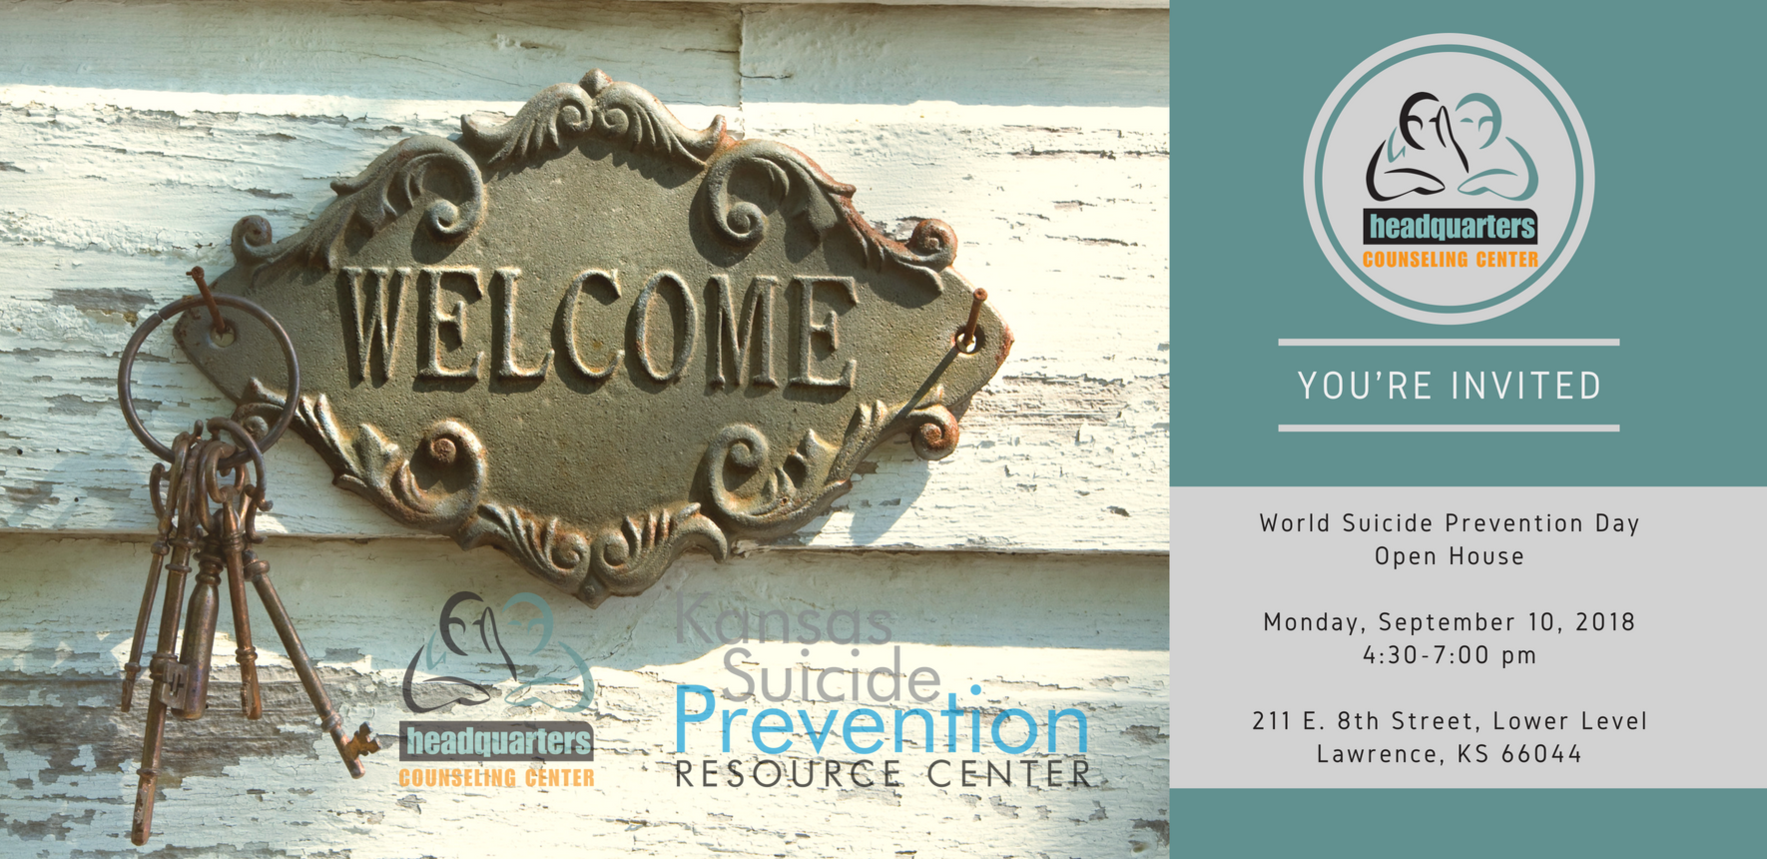 Headquarter's World Suicide Prevention Day Open House image